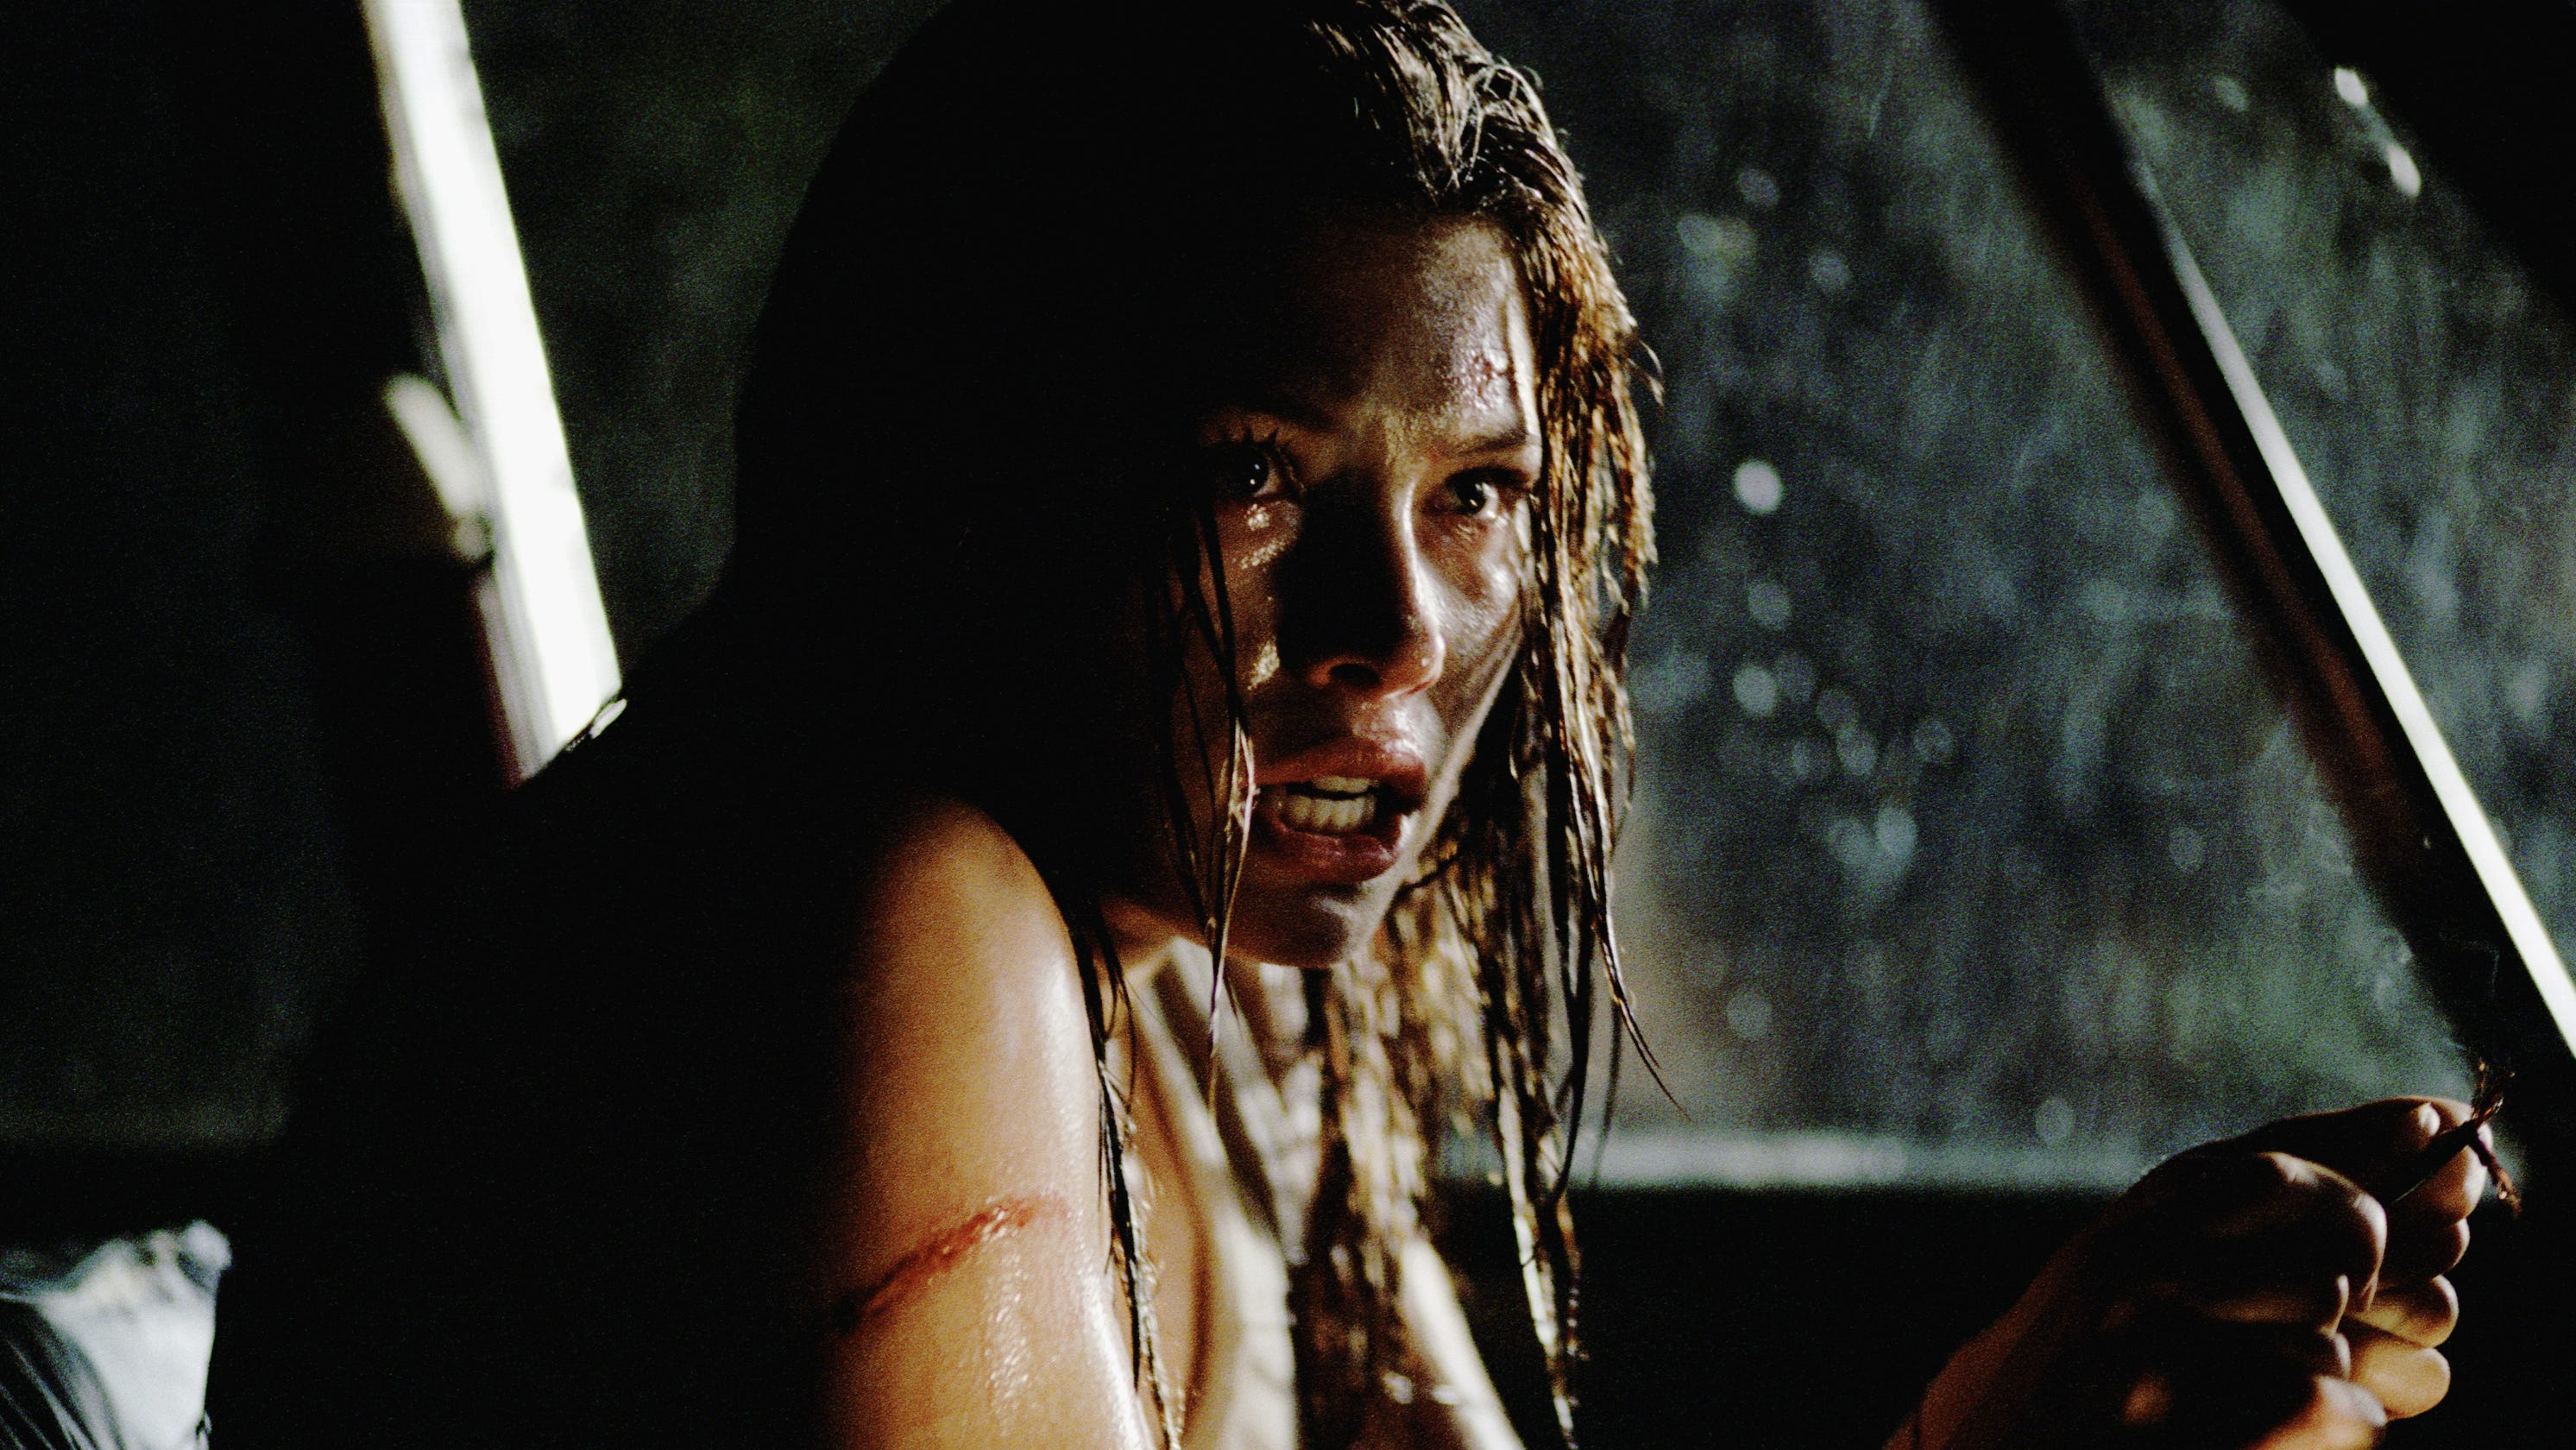 Jessica Biel shares her drop-dead gorgeous screen test for 'Texas Chainsaw Massacre'